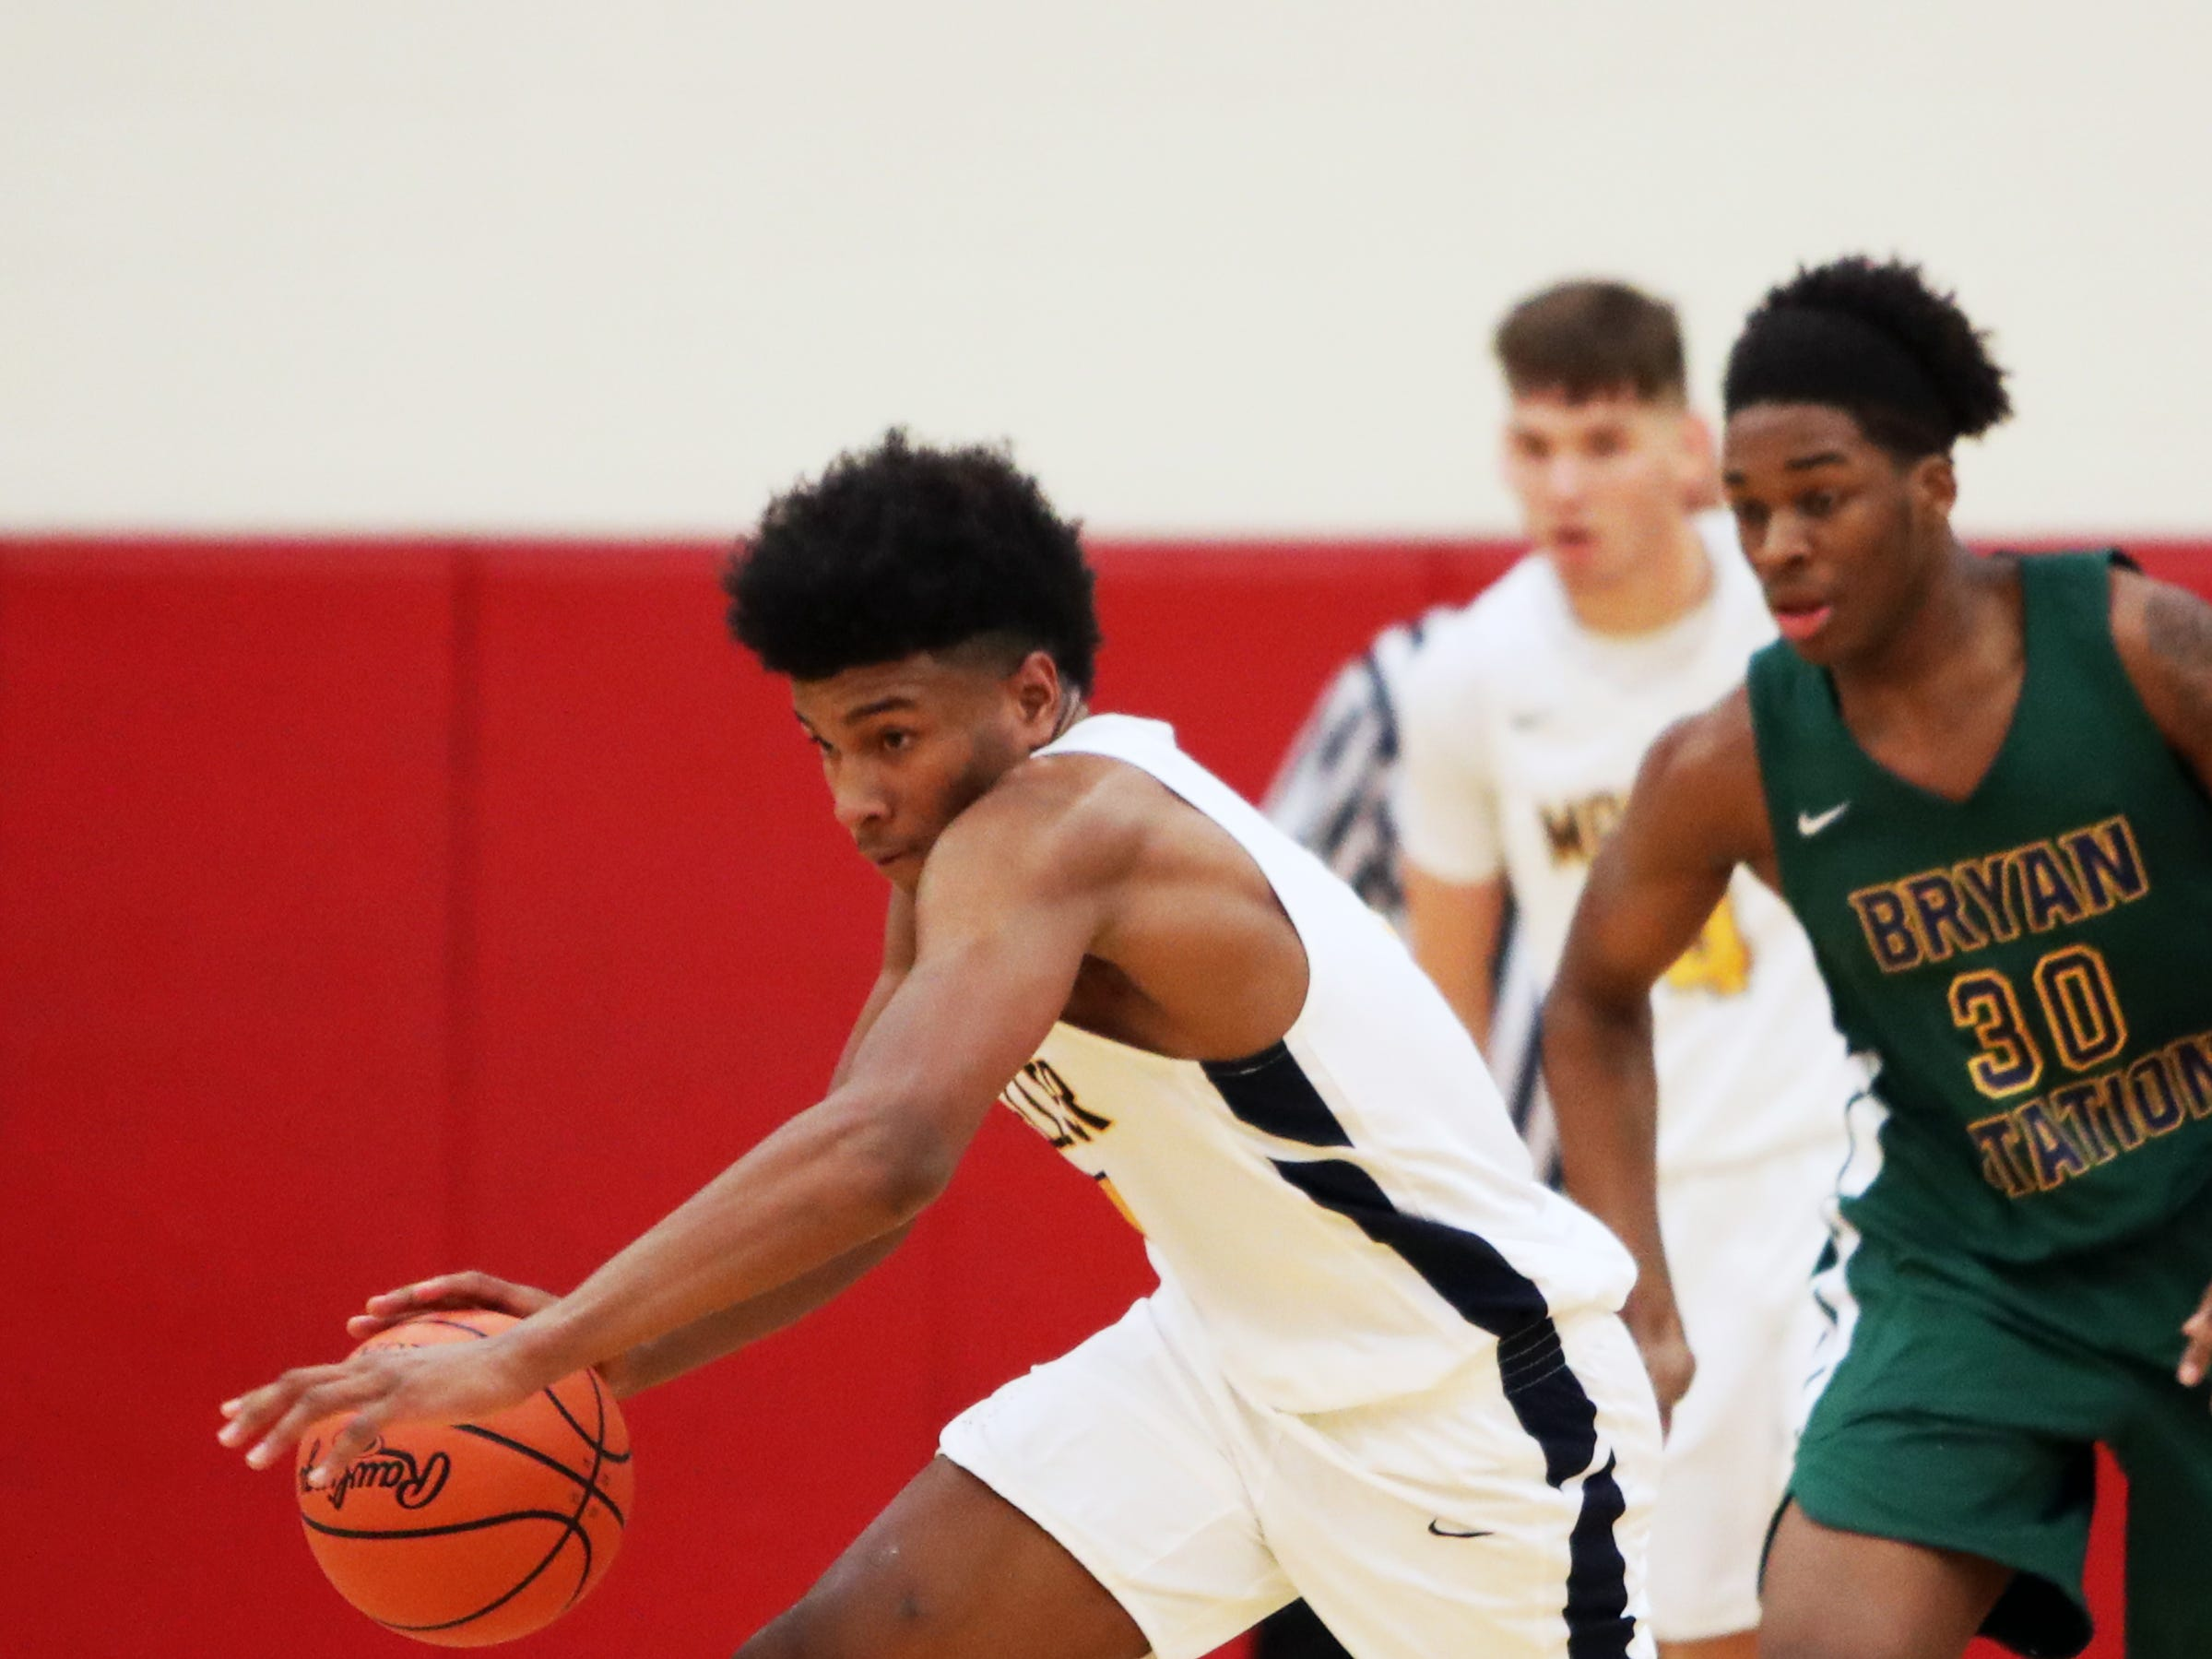 Moeller guard Miles McBride makes a steal and starts a fast break at the Ohio Valley Hoops Classic at Hillsboro High School. Moeller defeated Bryan Station 85-42.